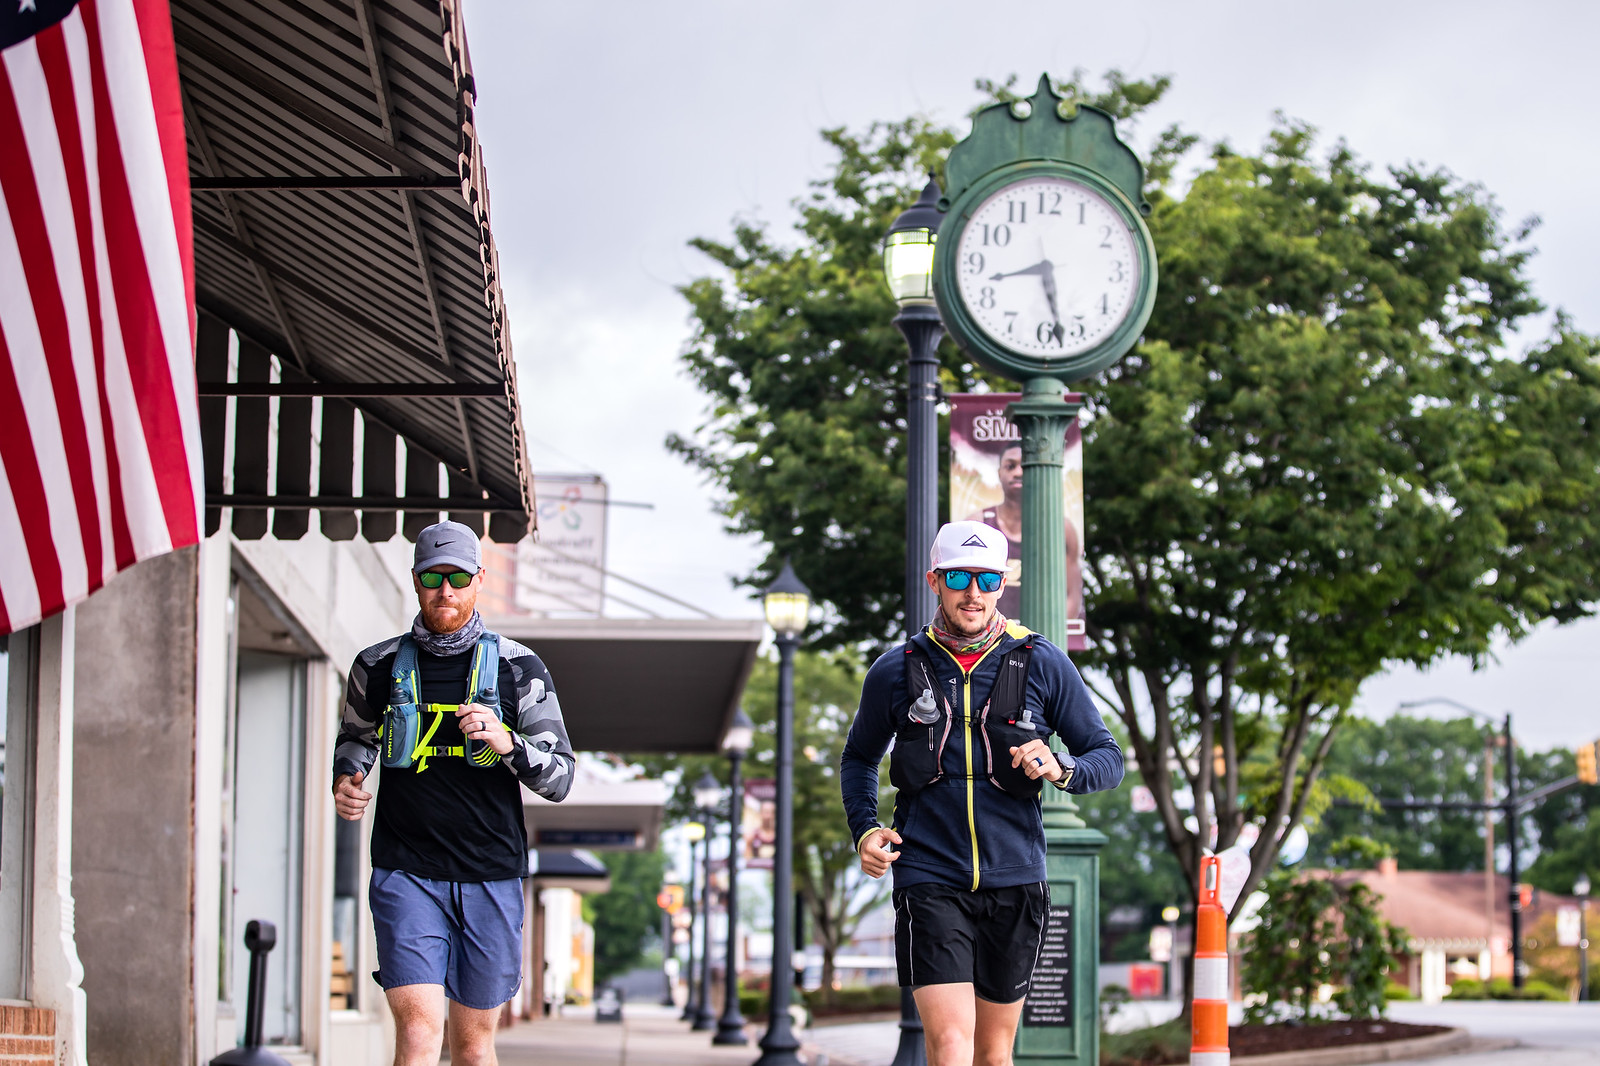 Local Resident Runs 100 Miles, Brings Woodruff Community Together